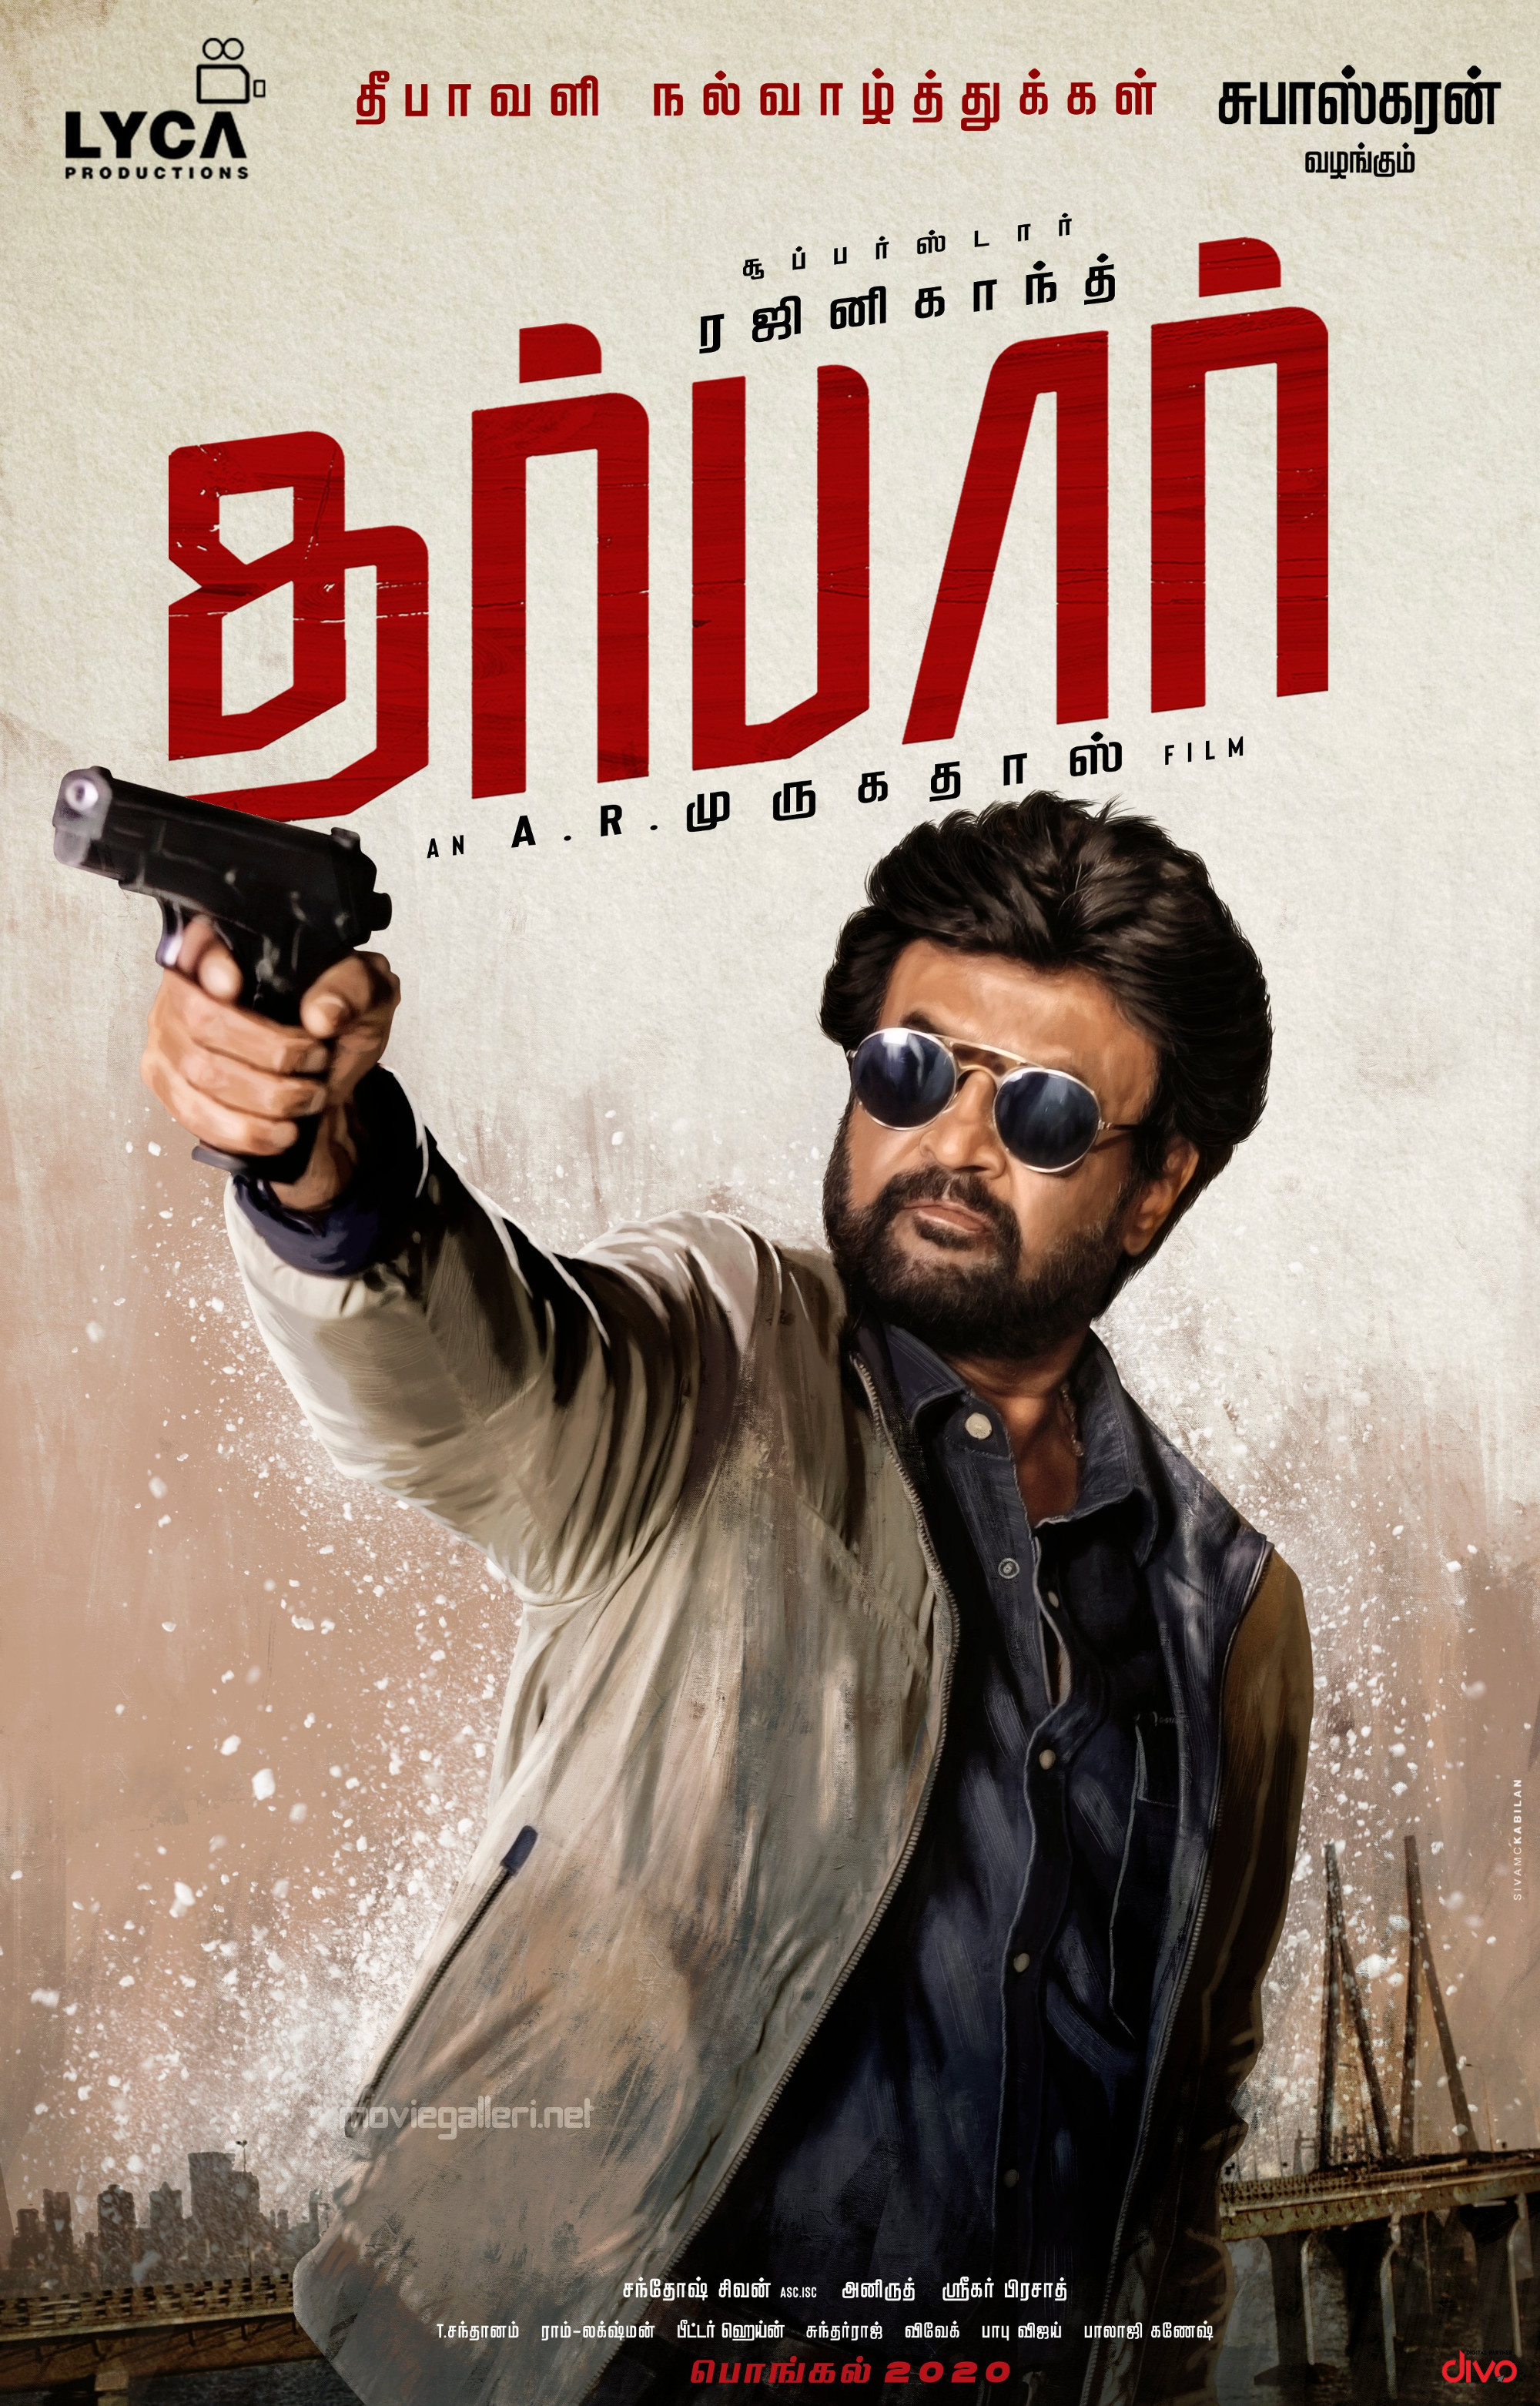 Darbar Movie Rajinikanth Deepavali Wishes Poster HD